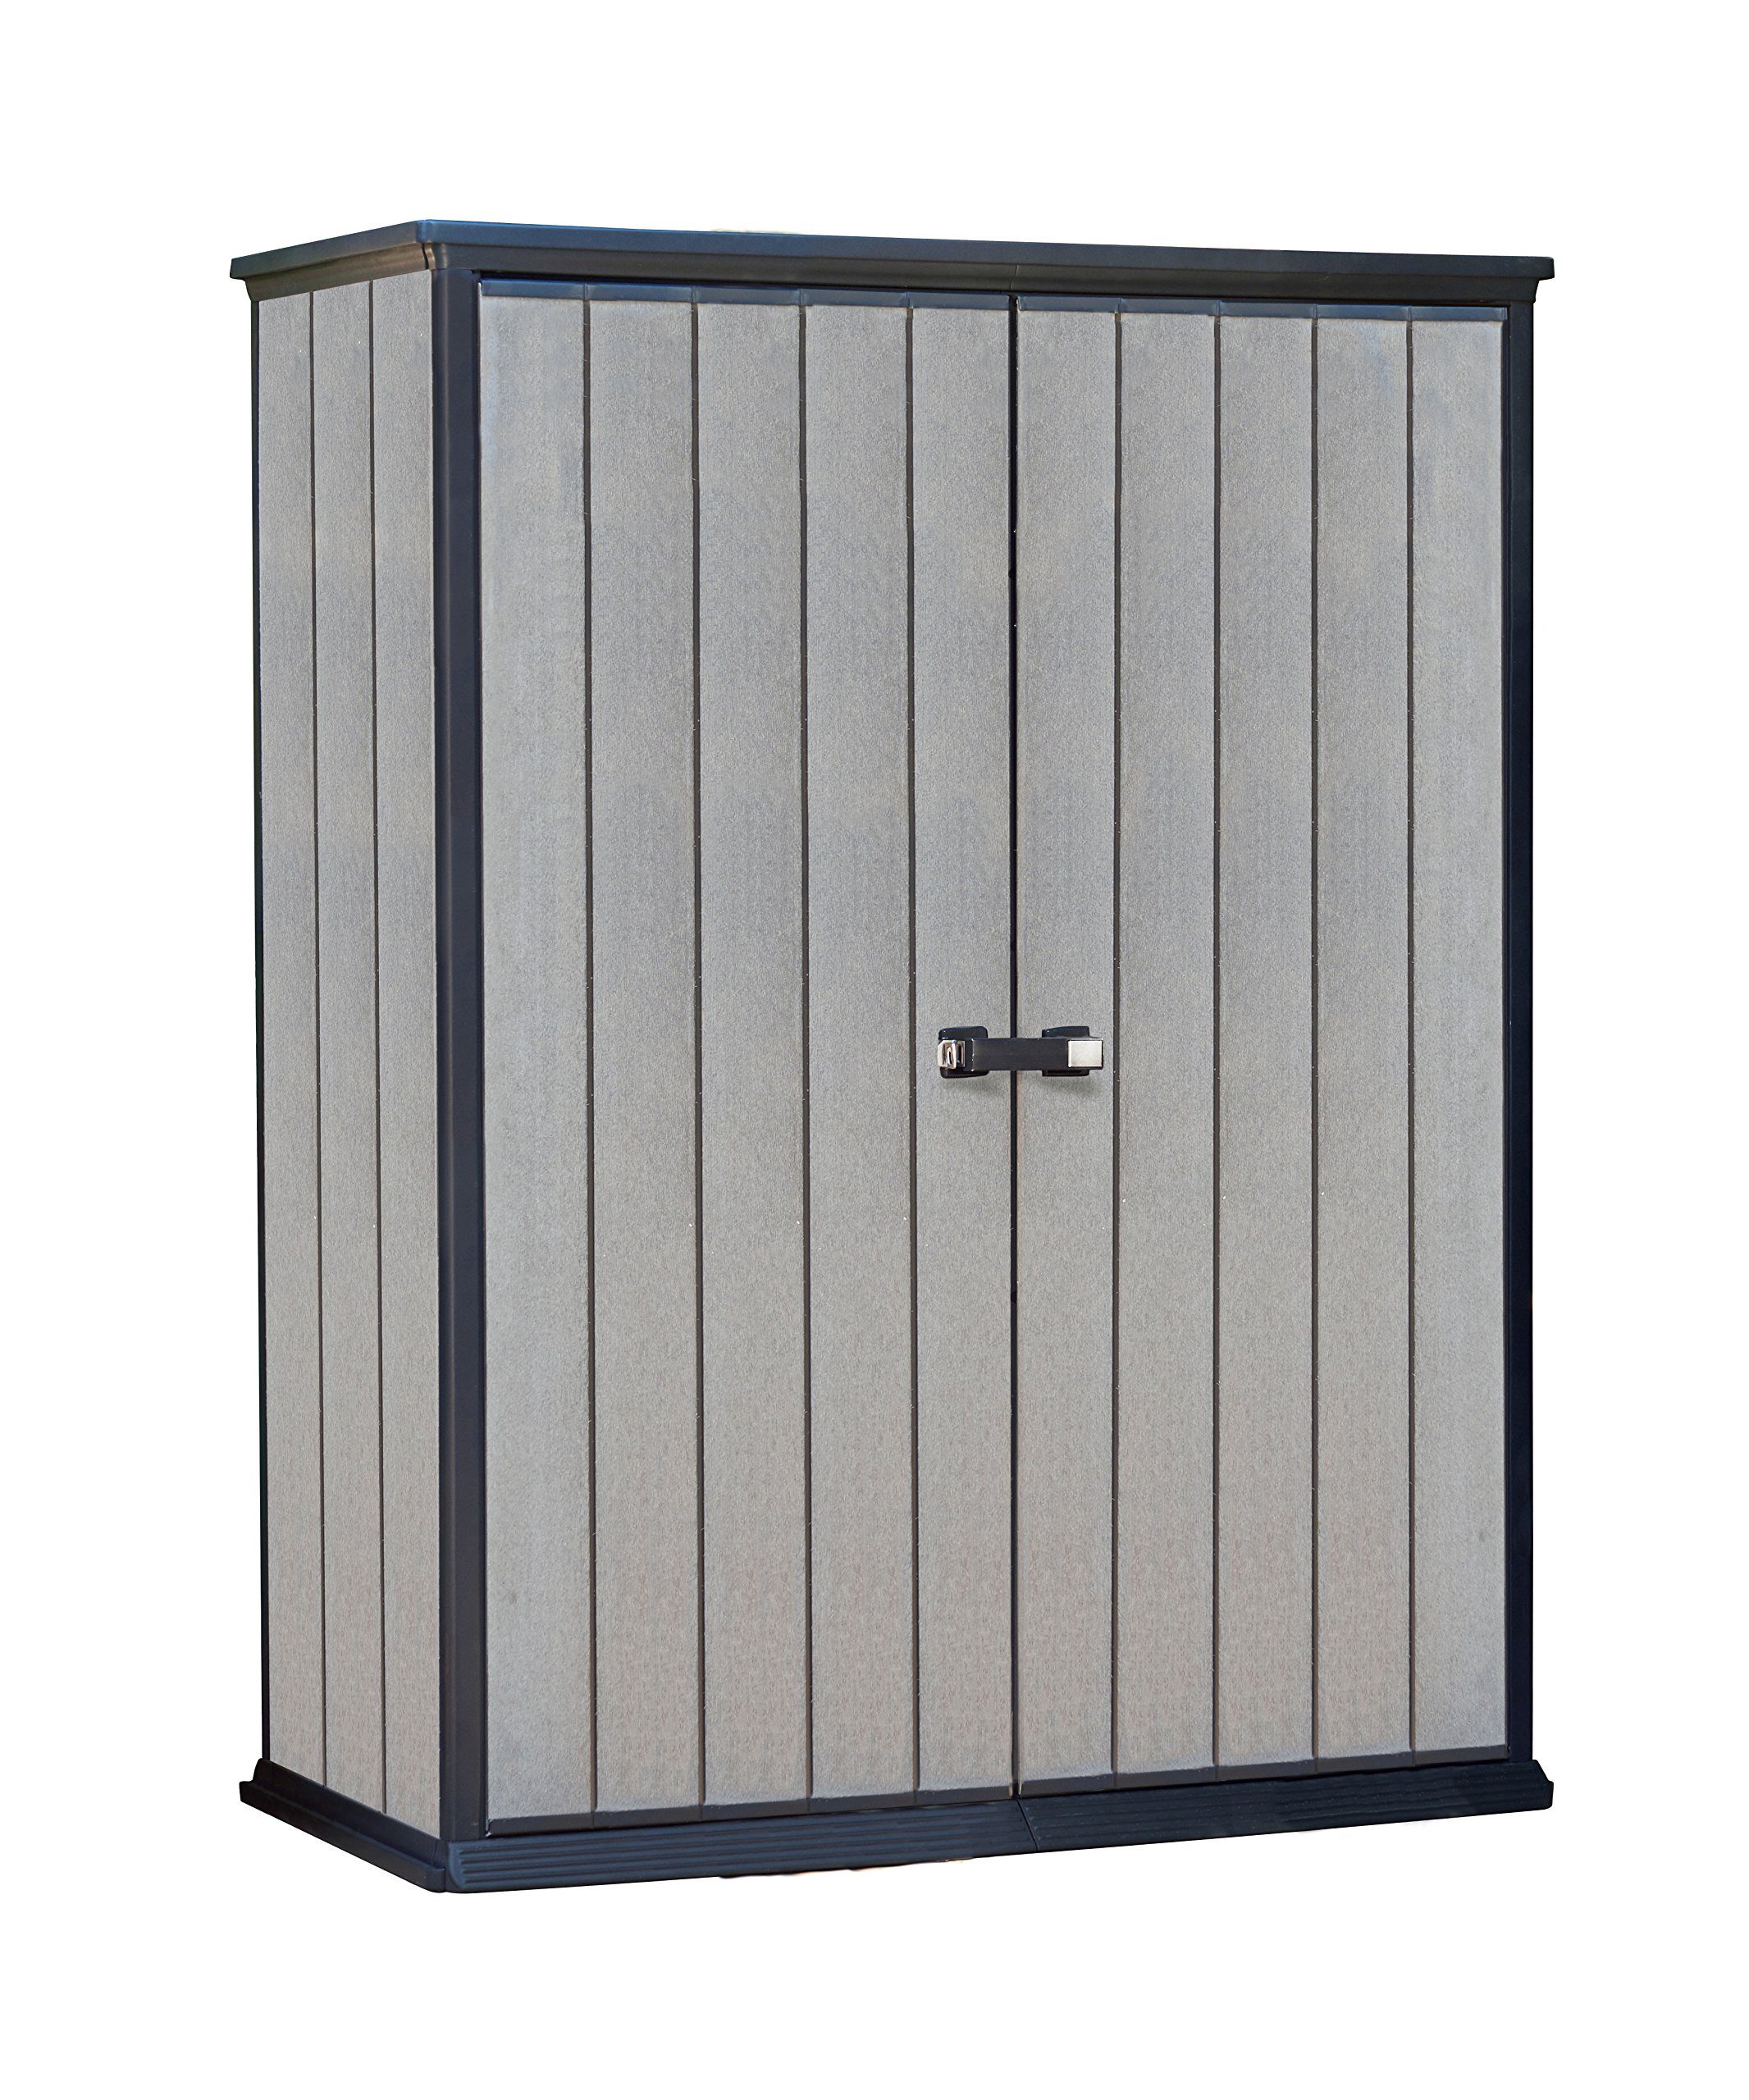 Keter High Store 4.5 x 2.5 Vertical Outdoor Resin Storage Shed, Grey by Keter